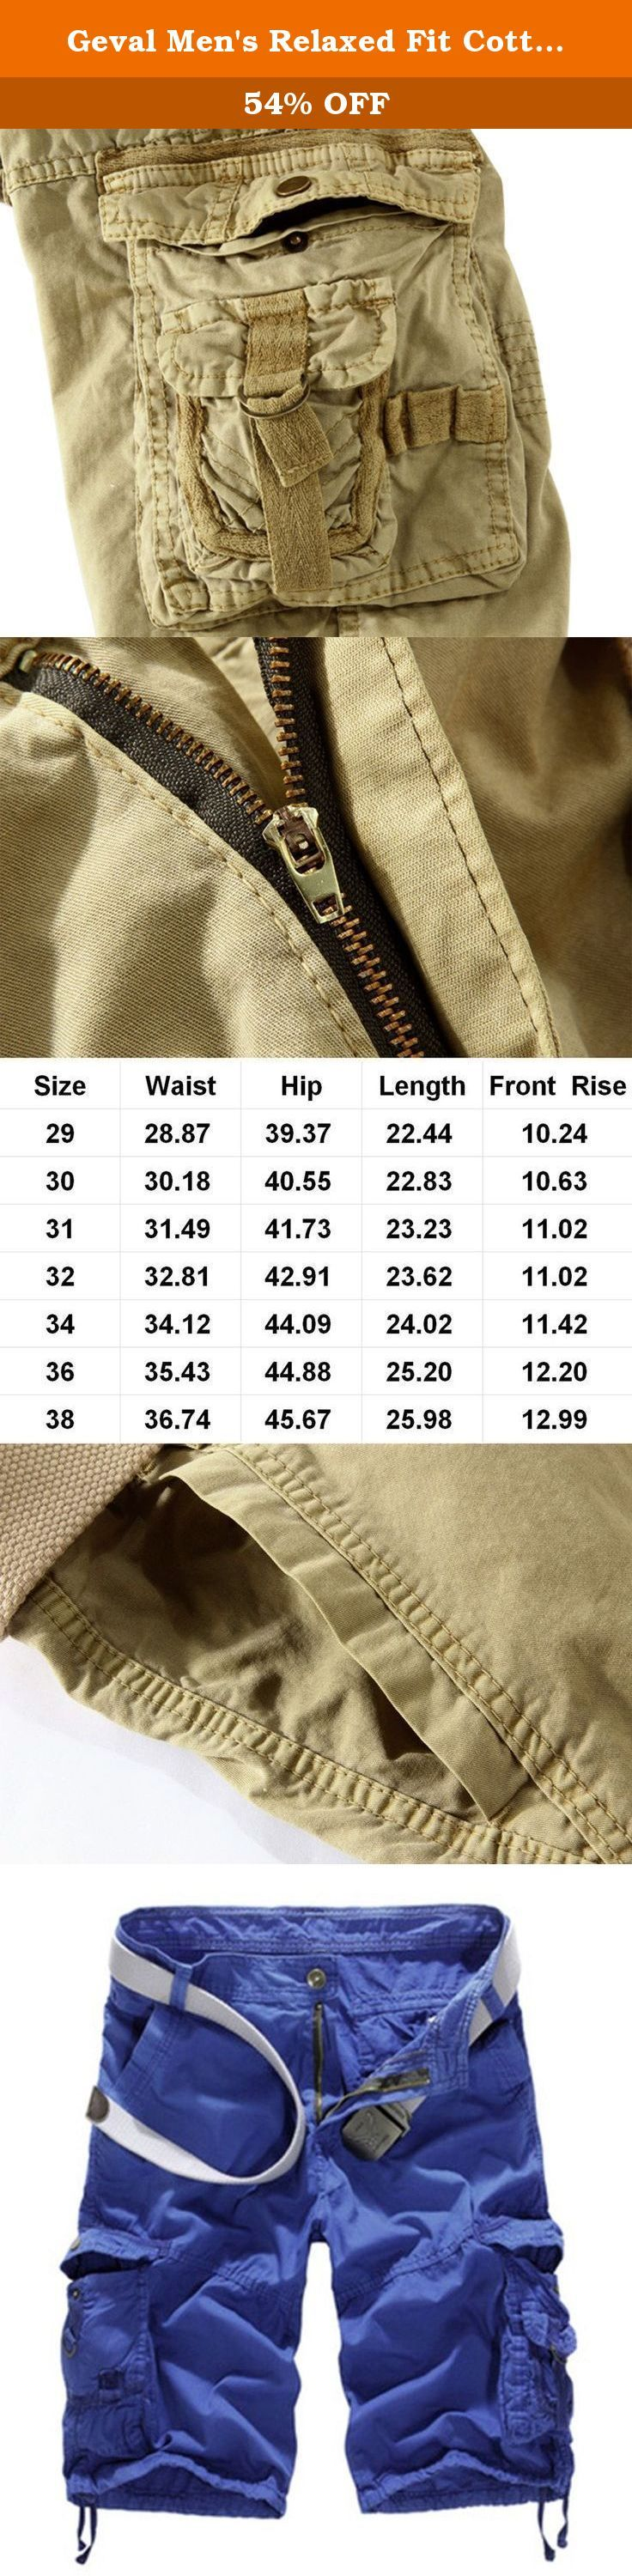 Geval Men's Relaxed Fit Cotton Cargo Short Pants With Multi Pockets(Skyblue,30). Attention:size chart is only for reference, error(1-3cm) should be permissible,if you have any problem please feel free to contact us.